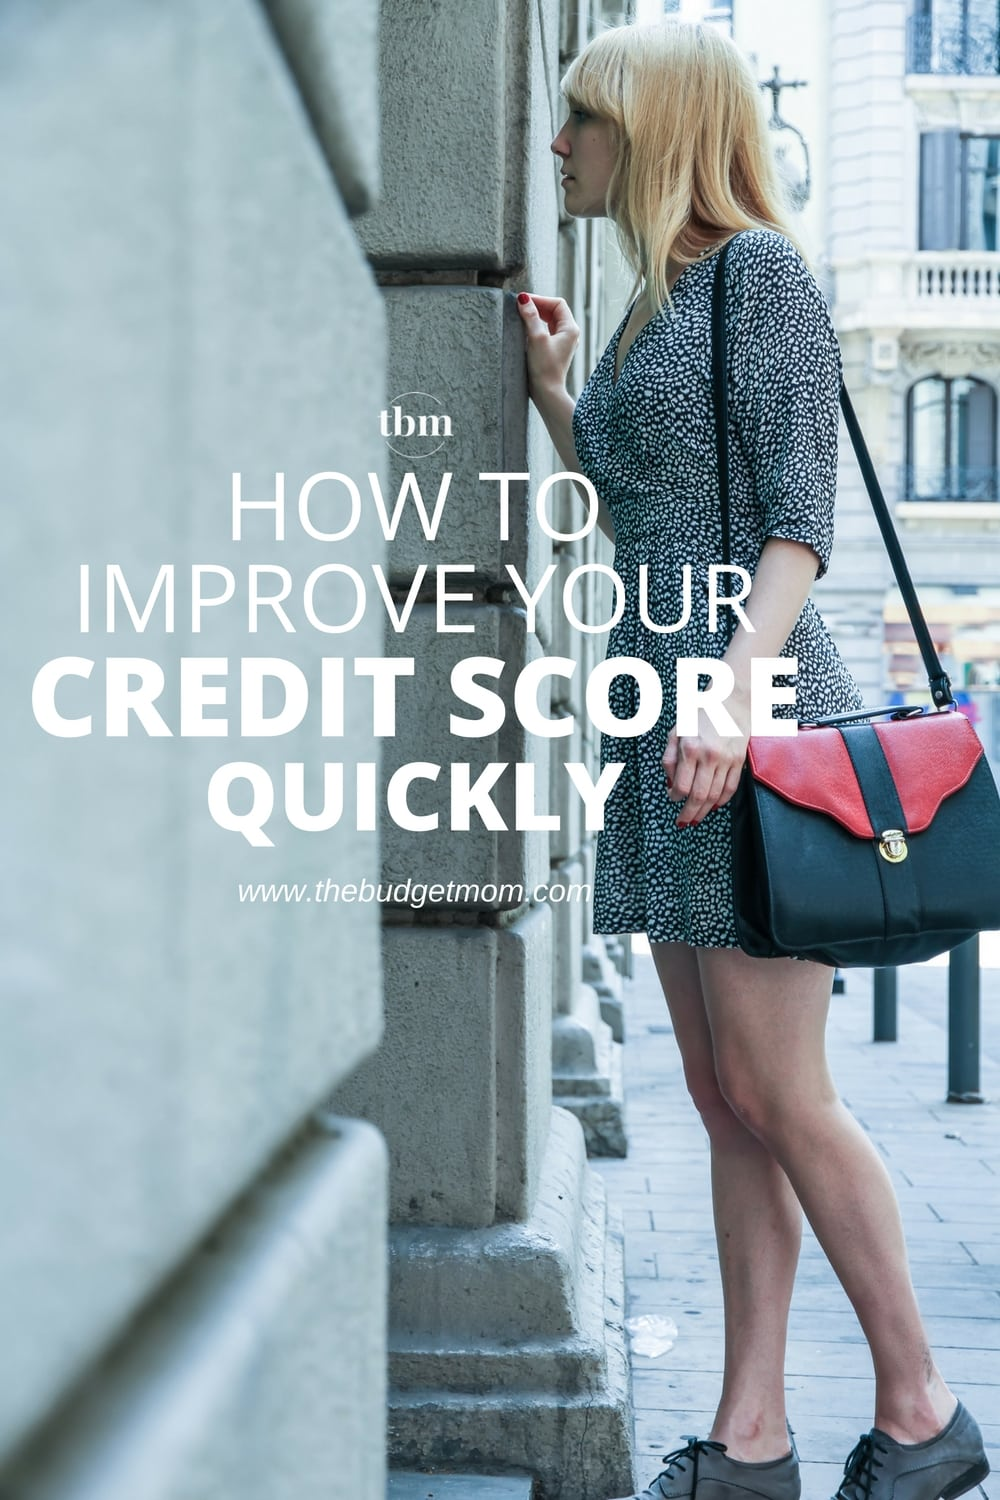 Your credit score impacts so many important financial decisions in your life and most people really don't think about it until they need it. Click to read about 3 smart ways to improve your credit score quickly so you get the best financial options available.